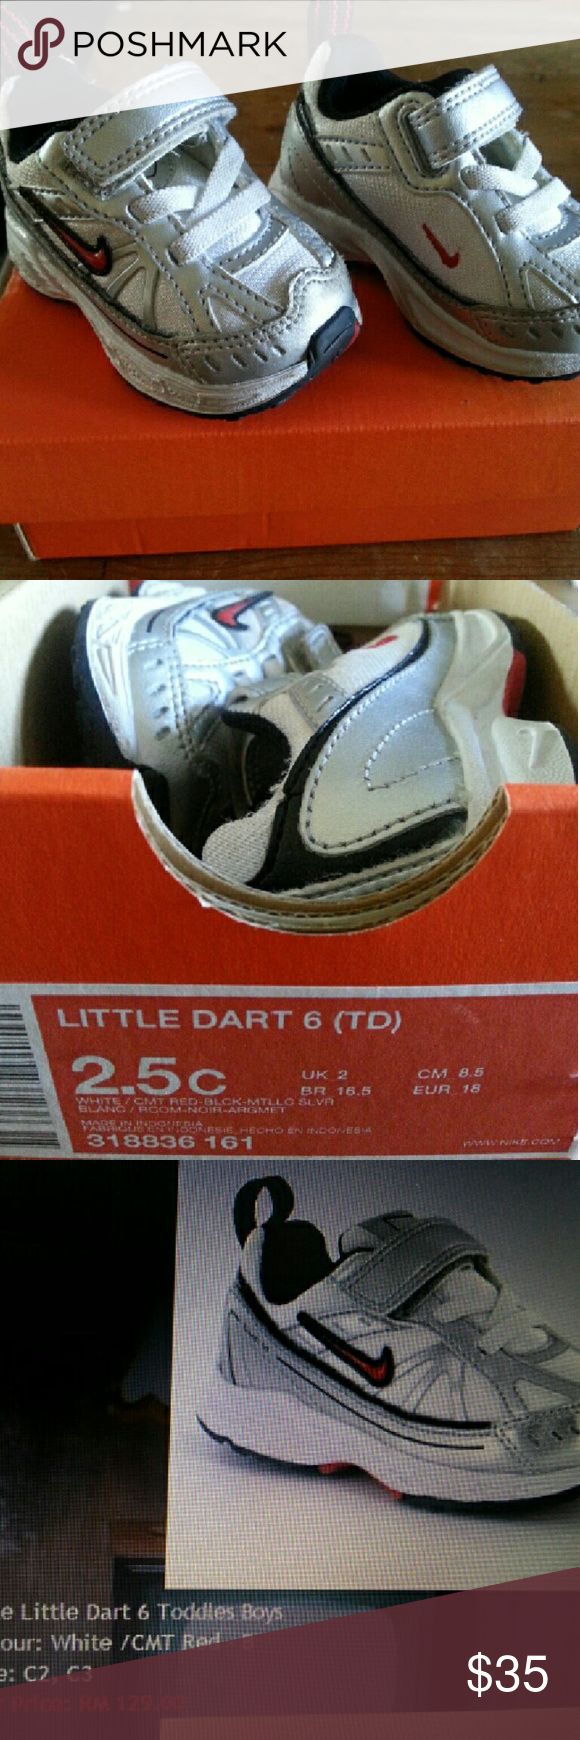 Nike Little Dart Infant Baby Shoes 2.5 Excellent Condition! White/Red/Black/